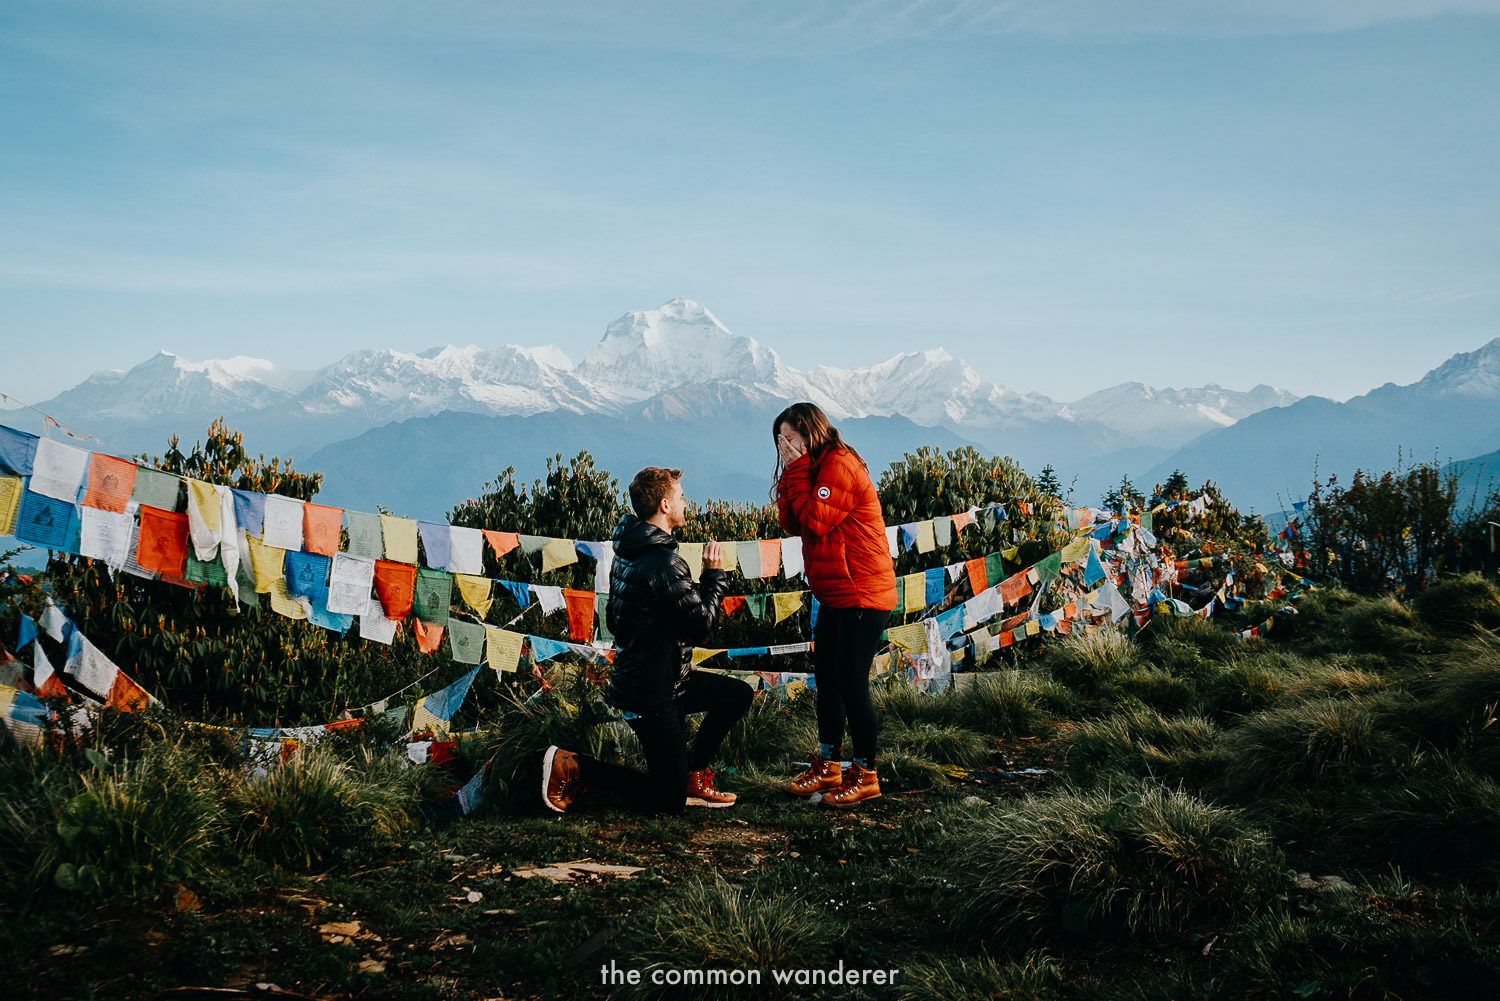 The Common Wanderer getting engaged at Poon Hill, Nepal